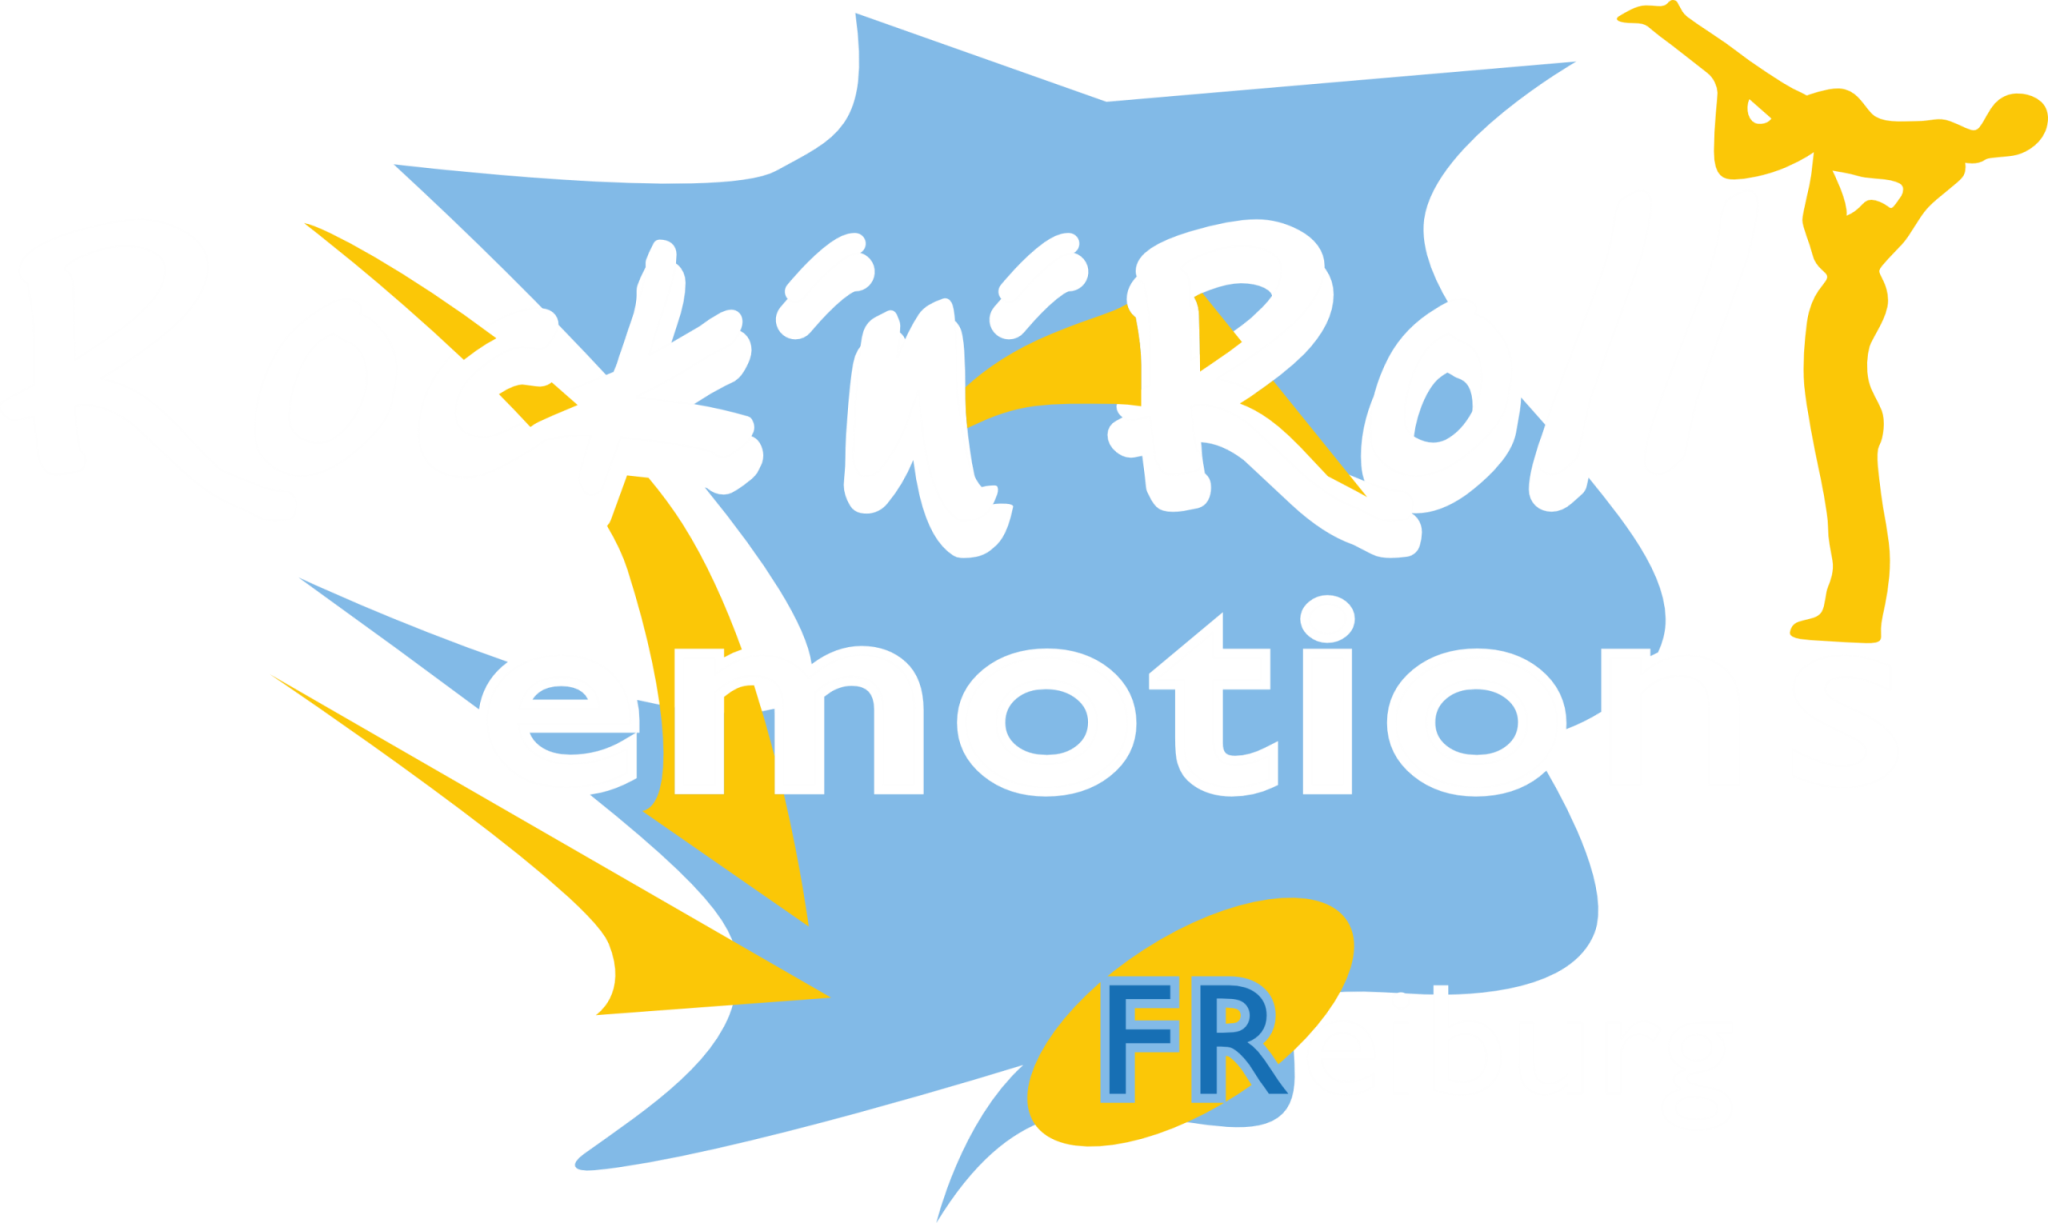 Rock'n'Roll emotions Freiburg e.V.